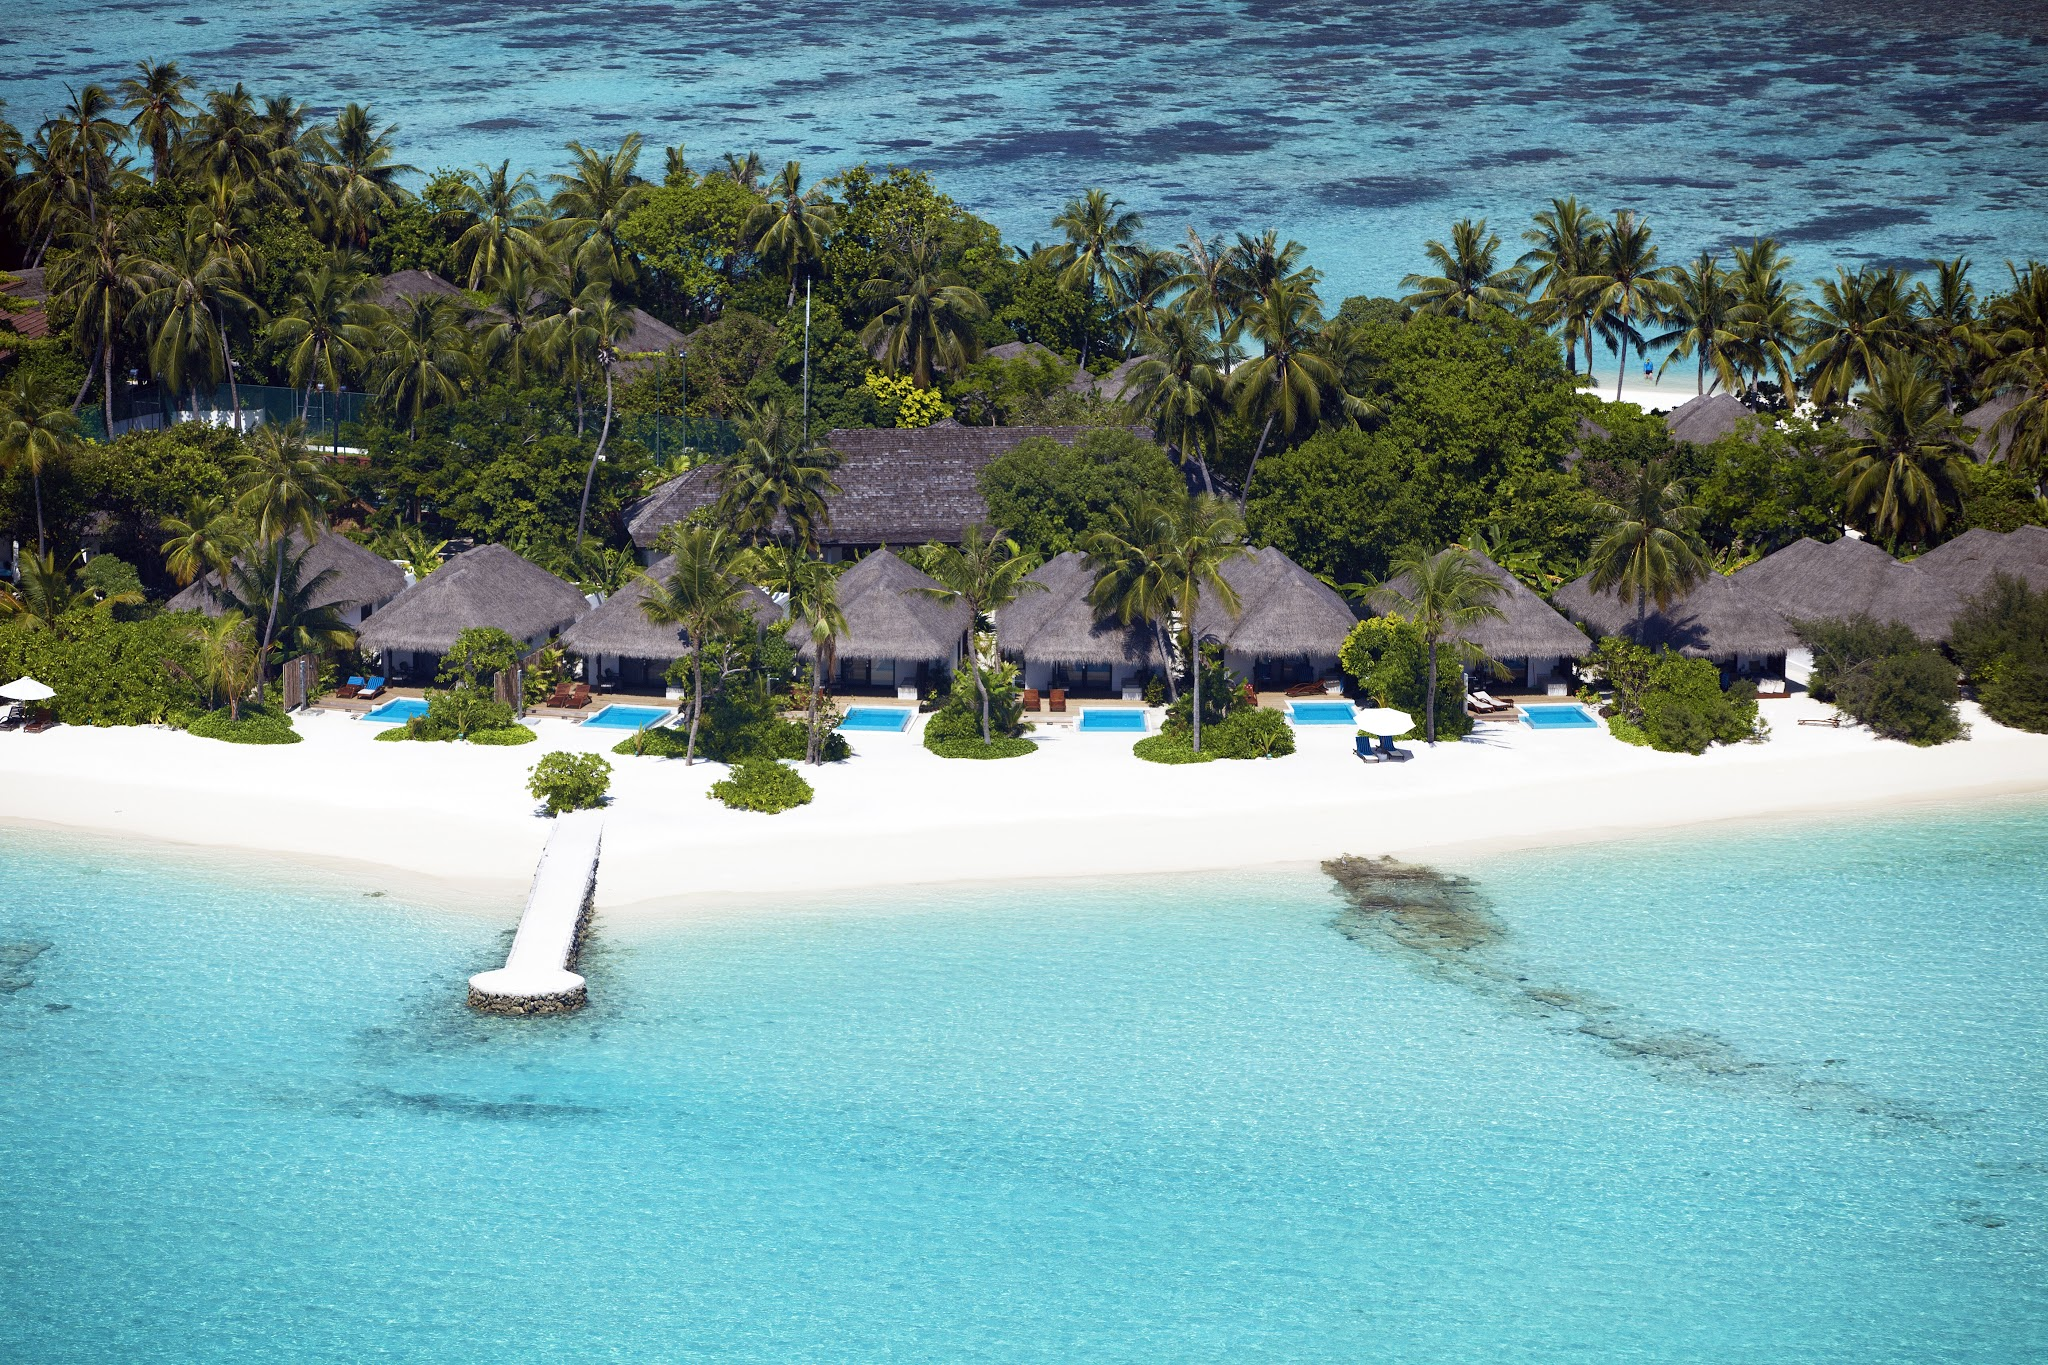 Places to visit in 2015 Velassaru Maldives Expecially for